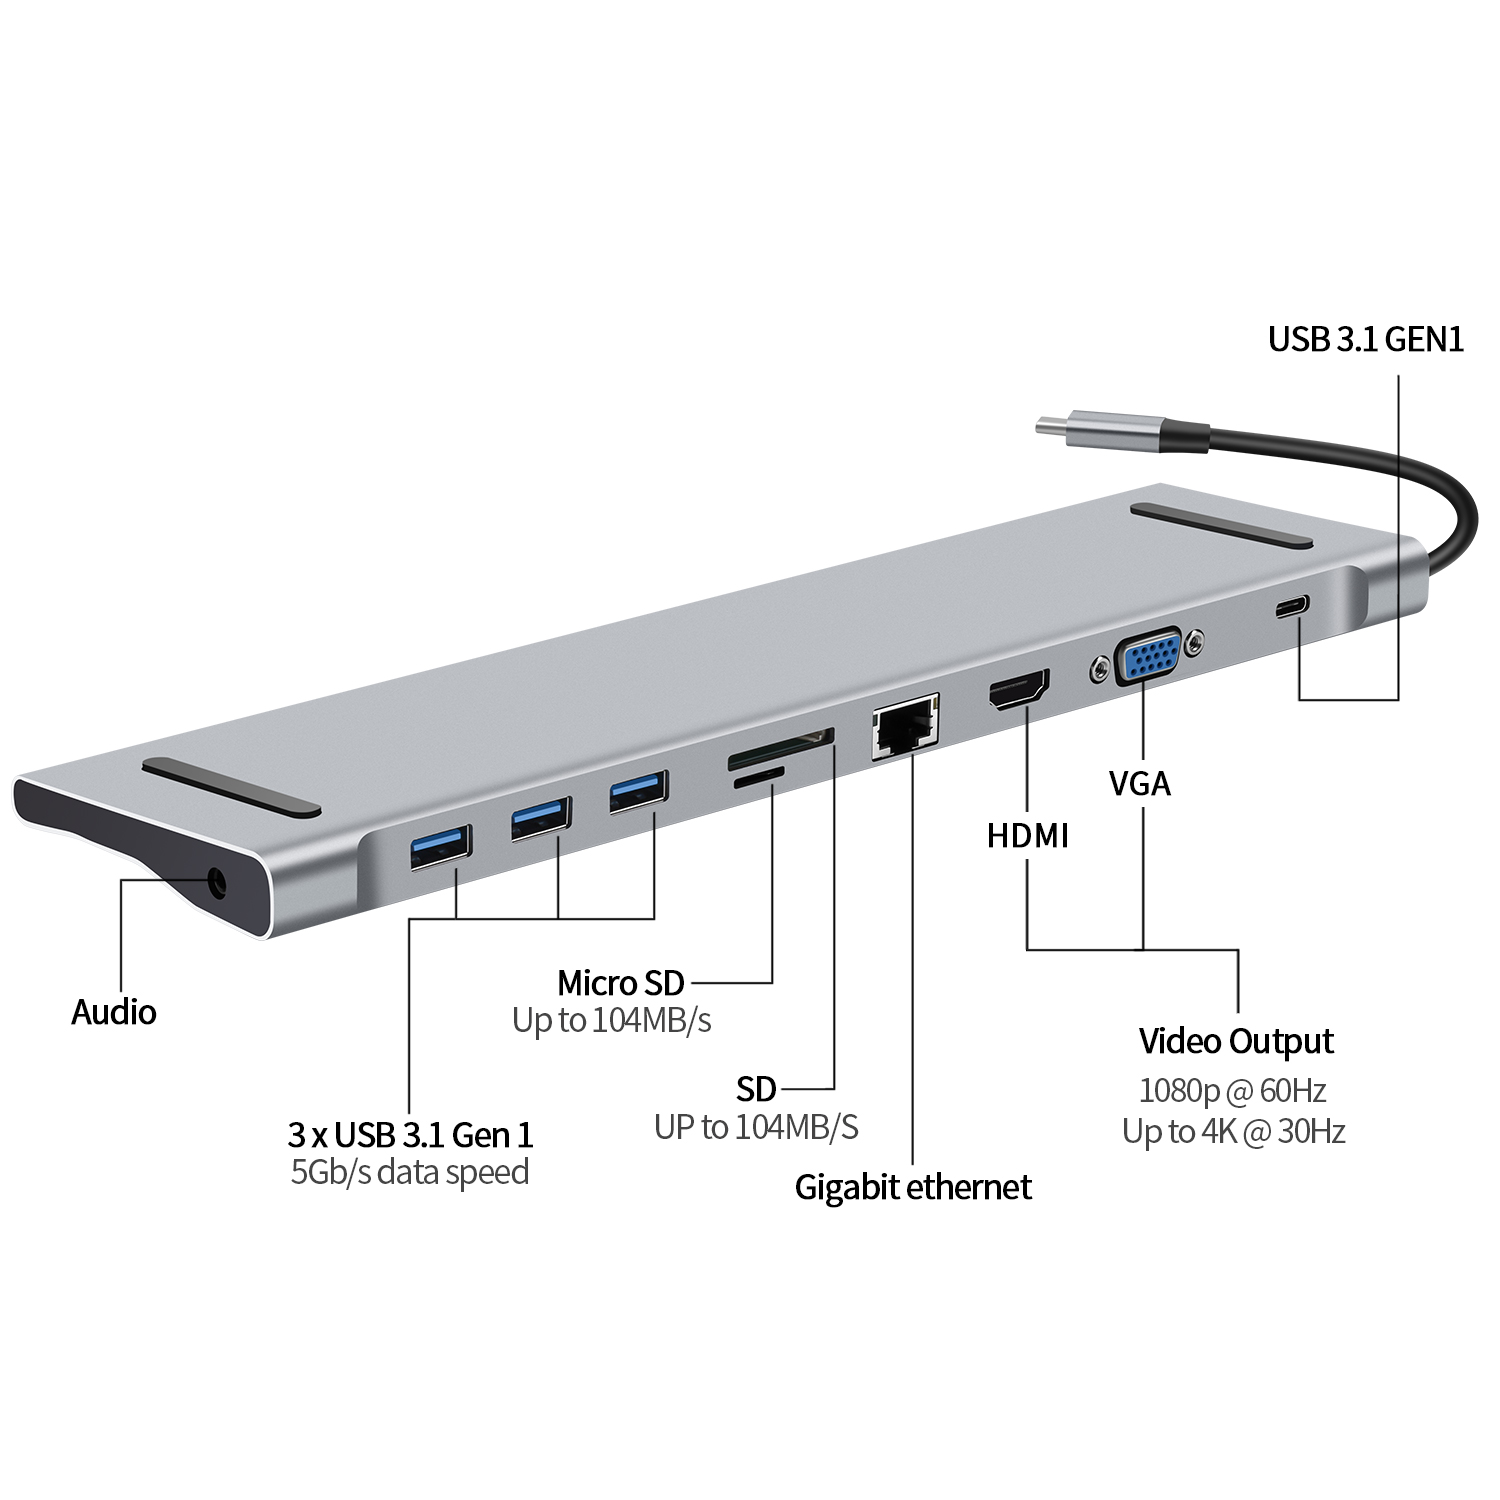 WISHFUL 2019 New gadgets 10 in 1 USB 3.1 Type-C Hub with 4K HDMl Adapter for MacBook Pro for Samsung